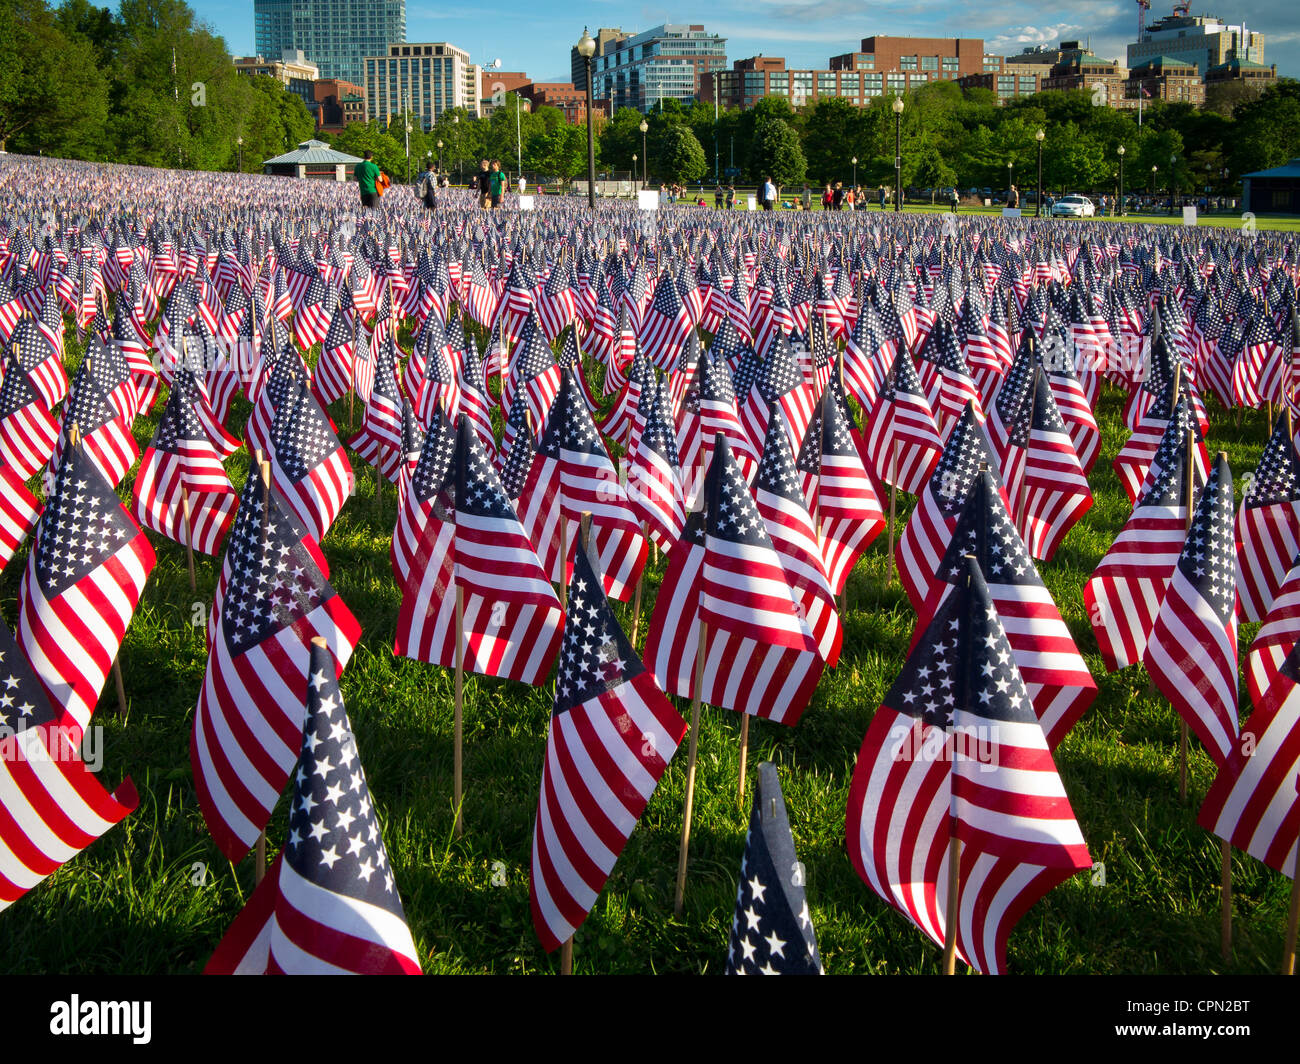 Flags on Memorial Day in Boston Commons - Stock Image